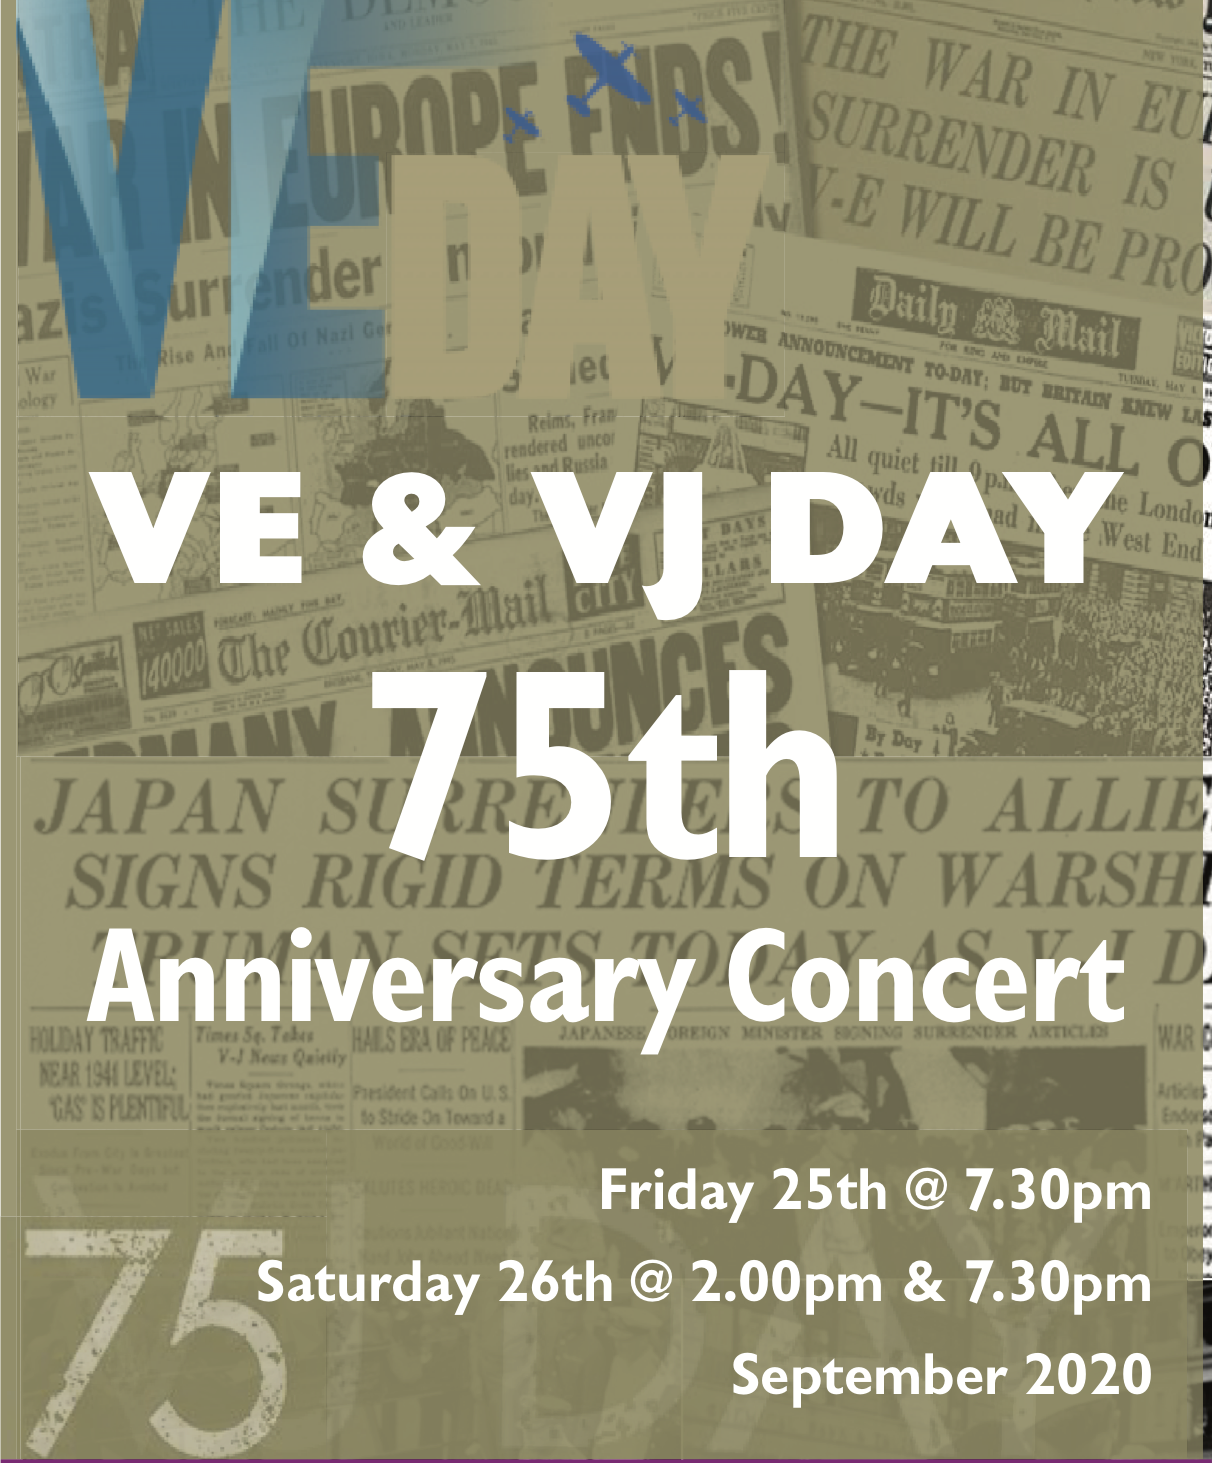 VE and VJ 75th Anniversary Concert - Friday 25th and Saturday 26th September 2020